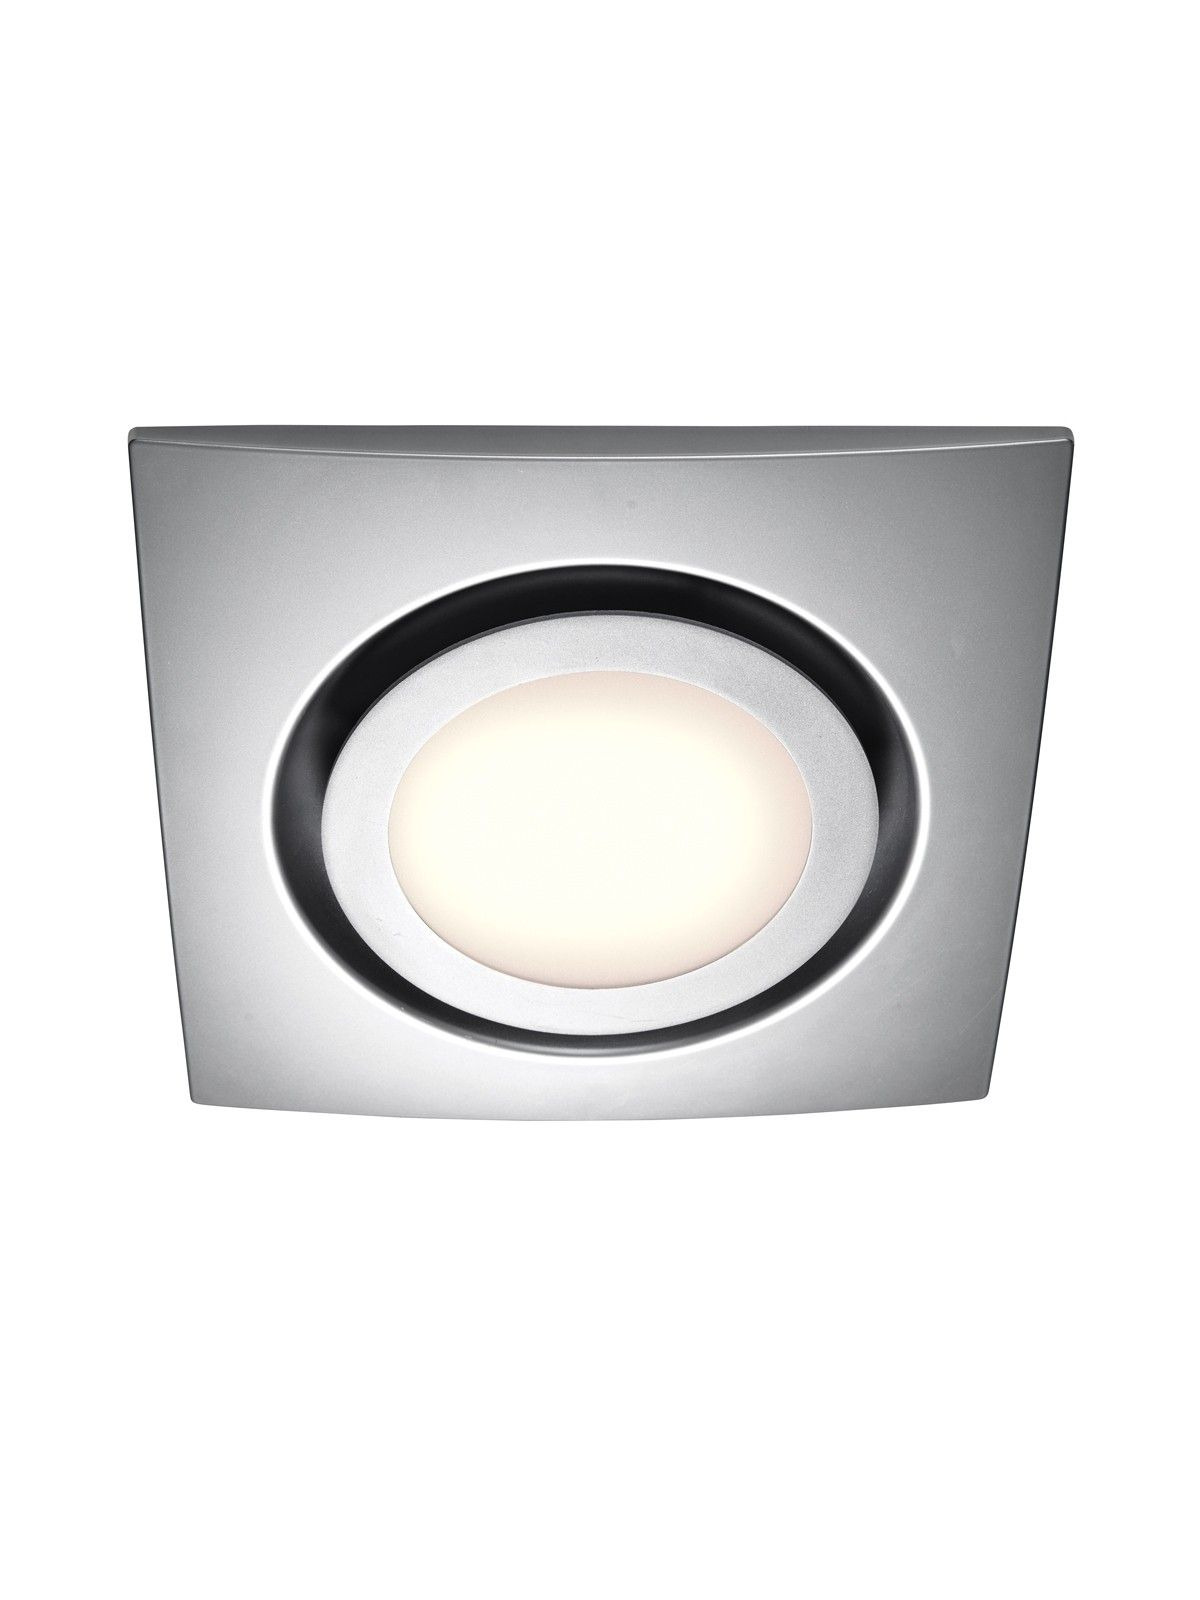 Decorative Bathroom Exhaust Fan with Light Best Of Exhaust Fan and Light In Shower Stall Tutalo